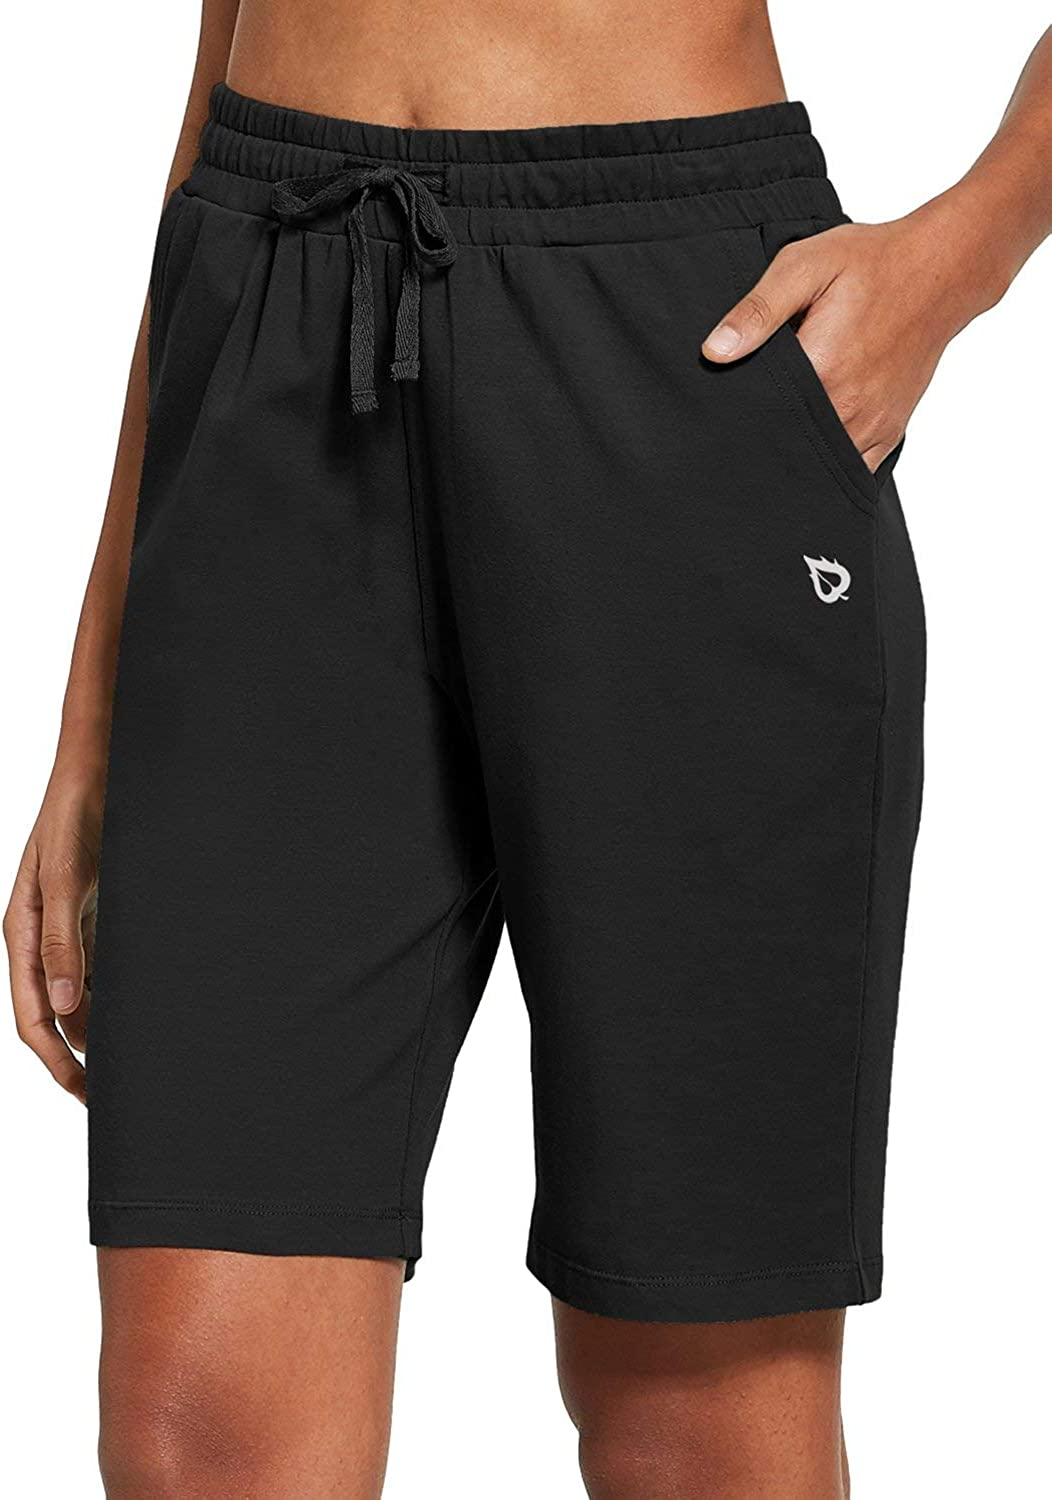 BALEAF Women's Bermuda Shorts Long Cotton Jersey with Pockets Athletic Sweat Walking Knee Length for Summer Workout : Clothing, Shoes & Jewelry